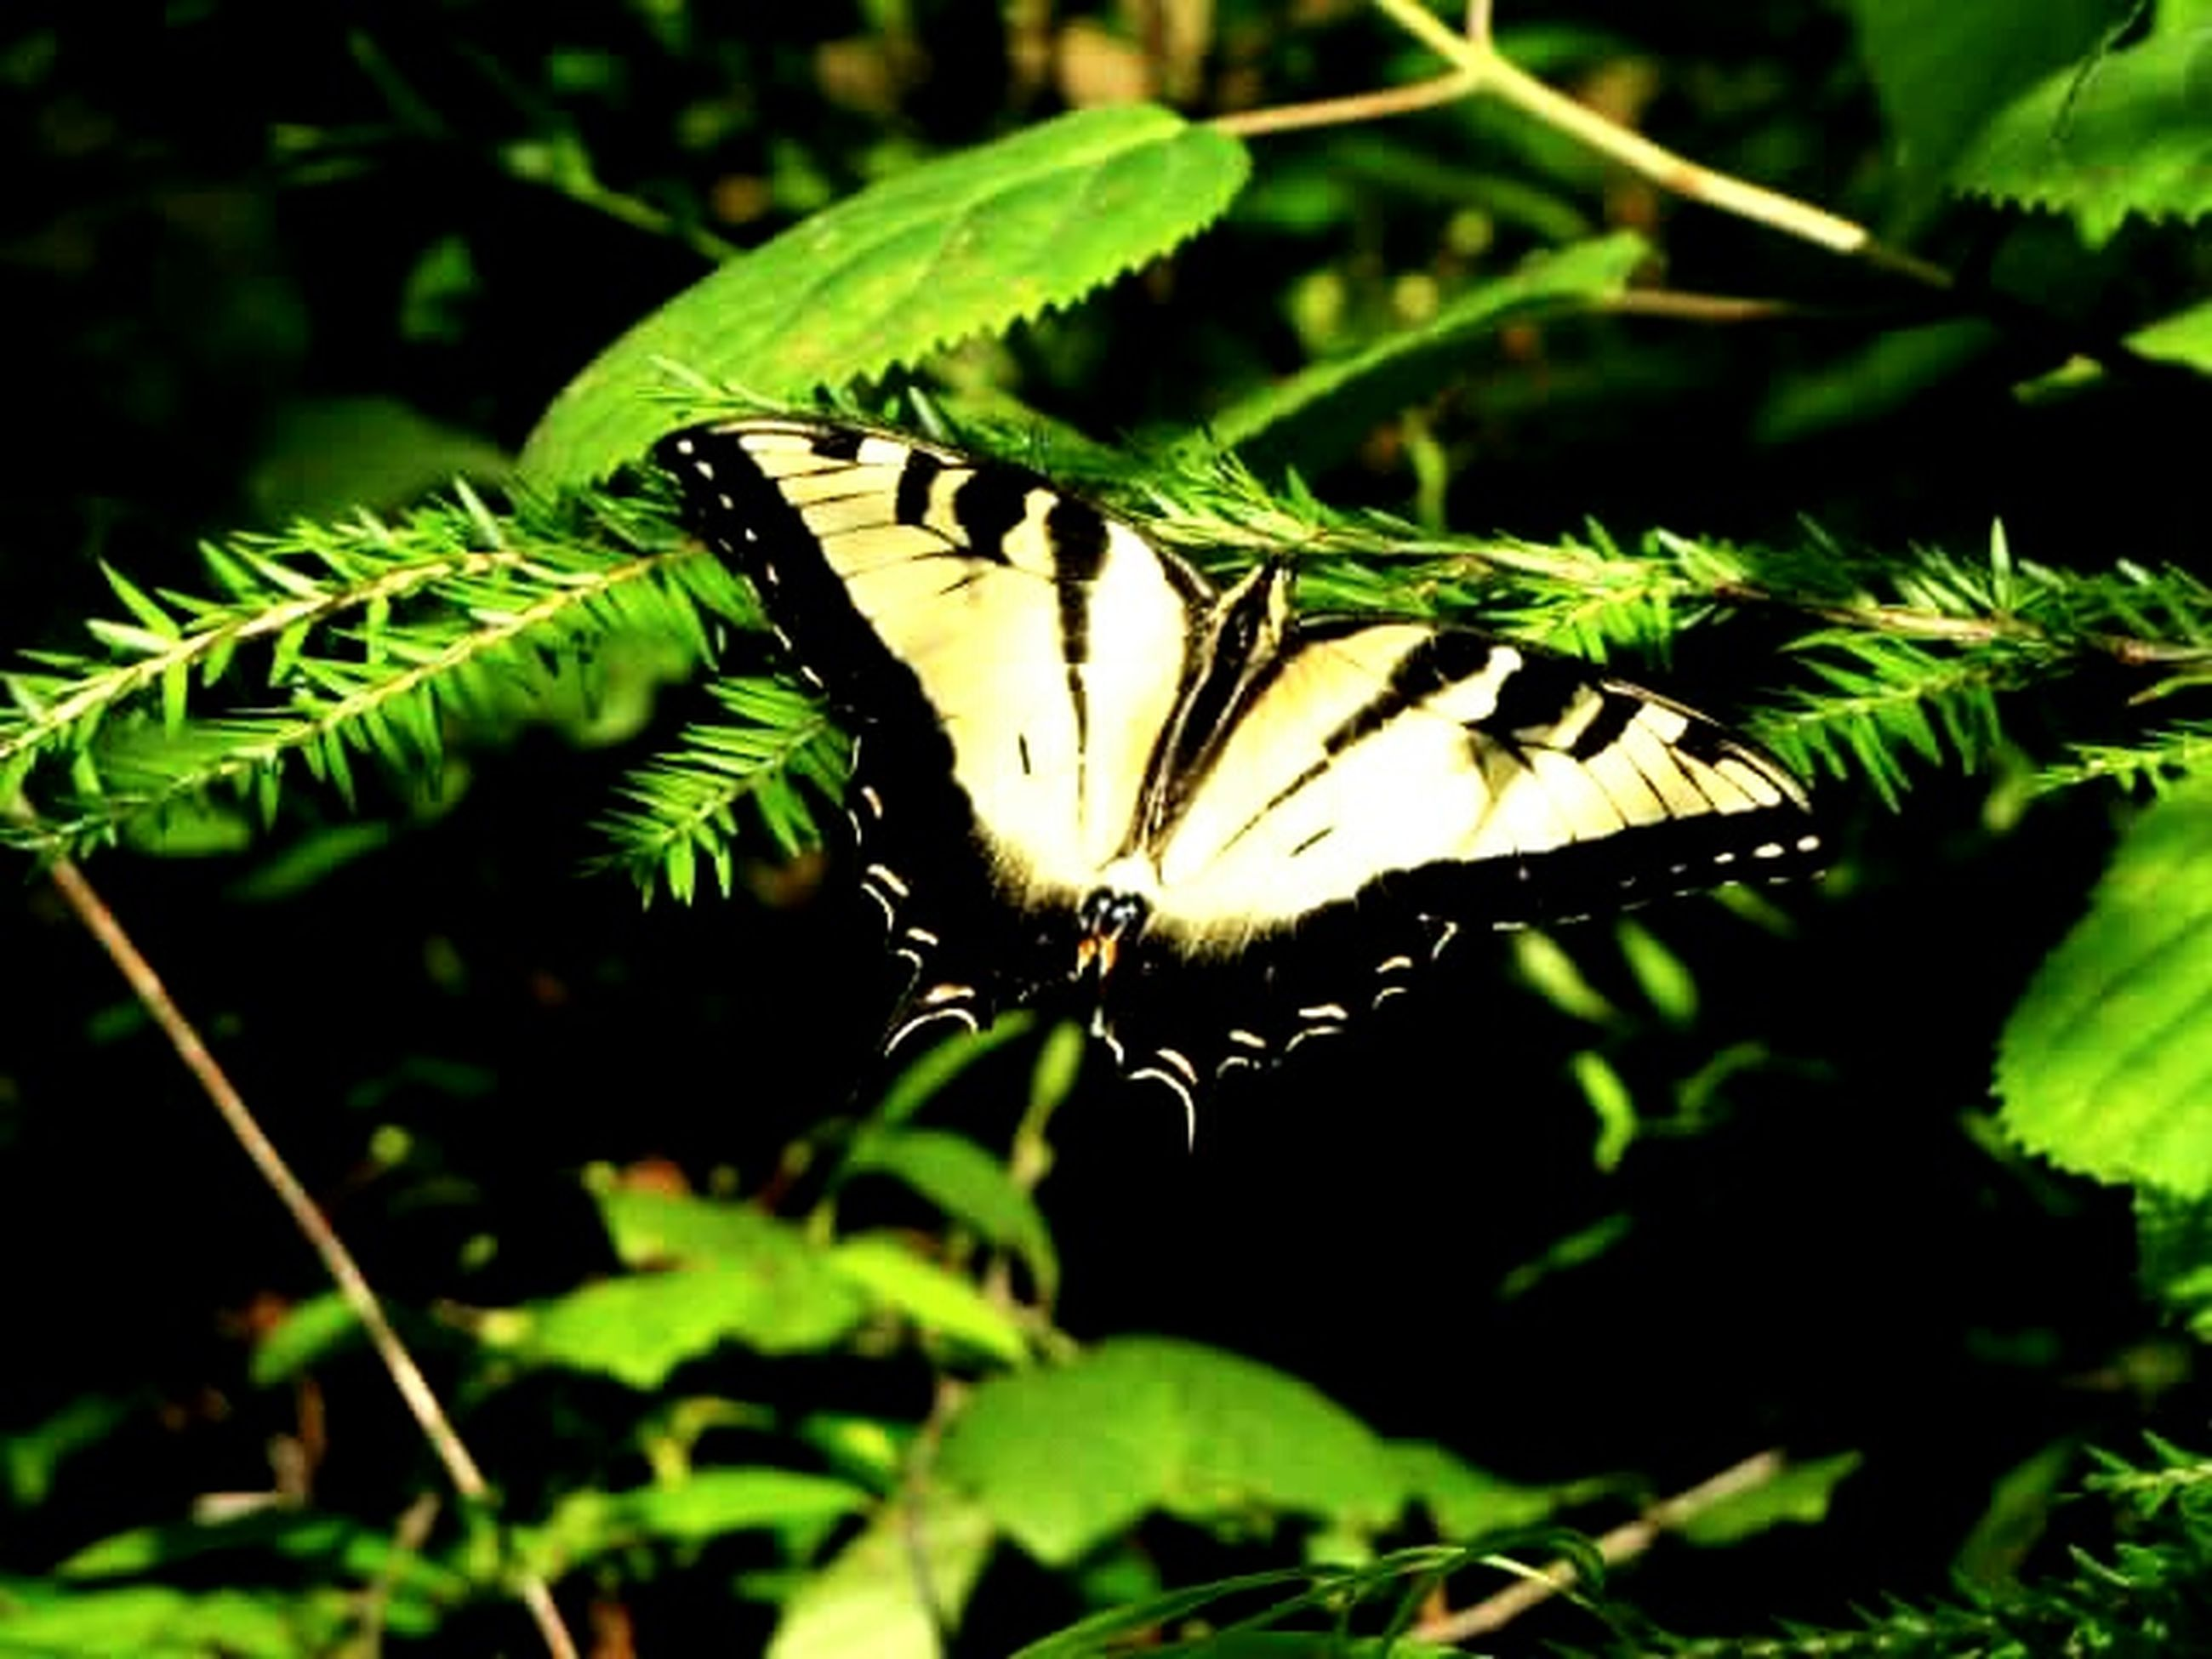 insect, animals in the wild, one animal, animal themes, wildlife, butterfly - insect, leaf, plant, butterfly, close-up, growth, focus on foreground, flower, green color, nature, beauty in nature, animal wing, animal markings, animal antenna, fragility